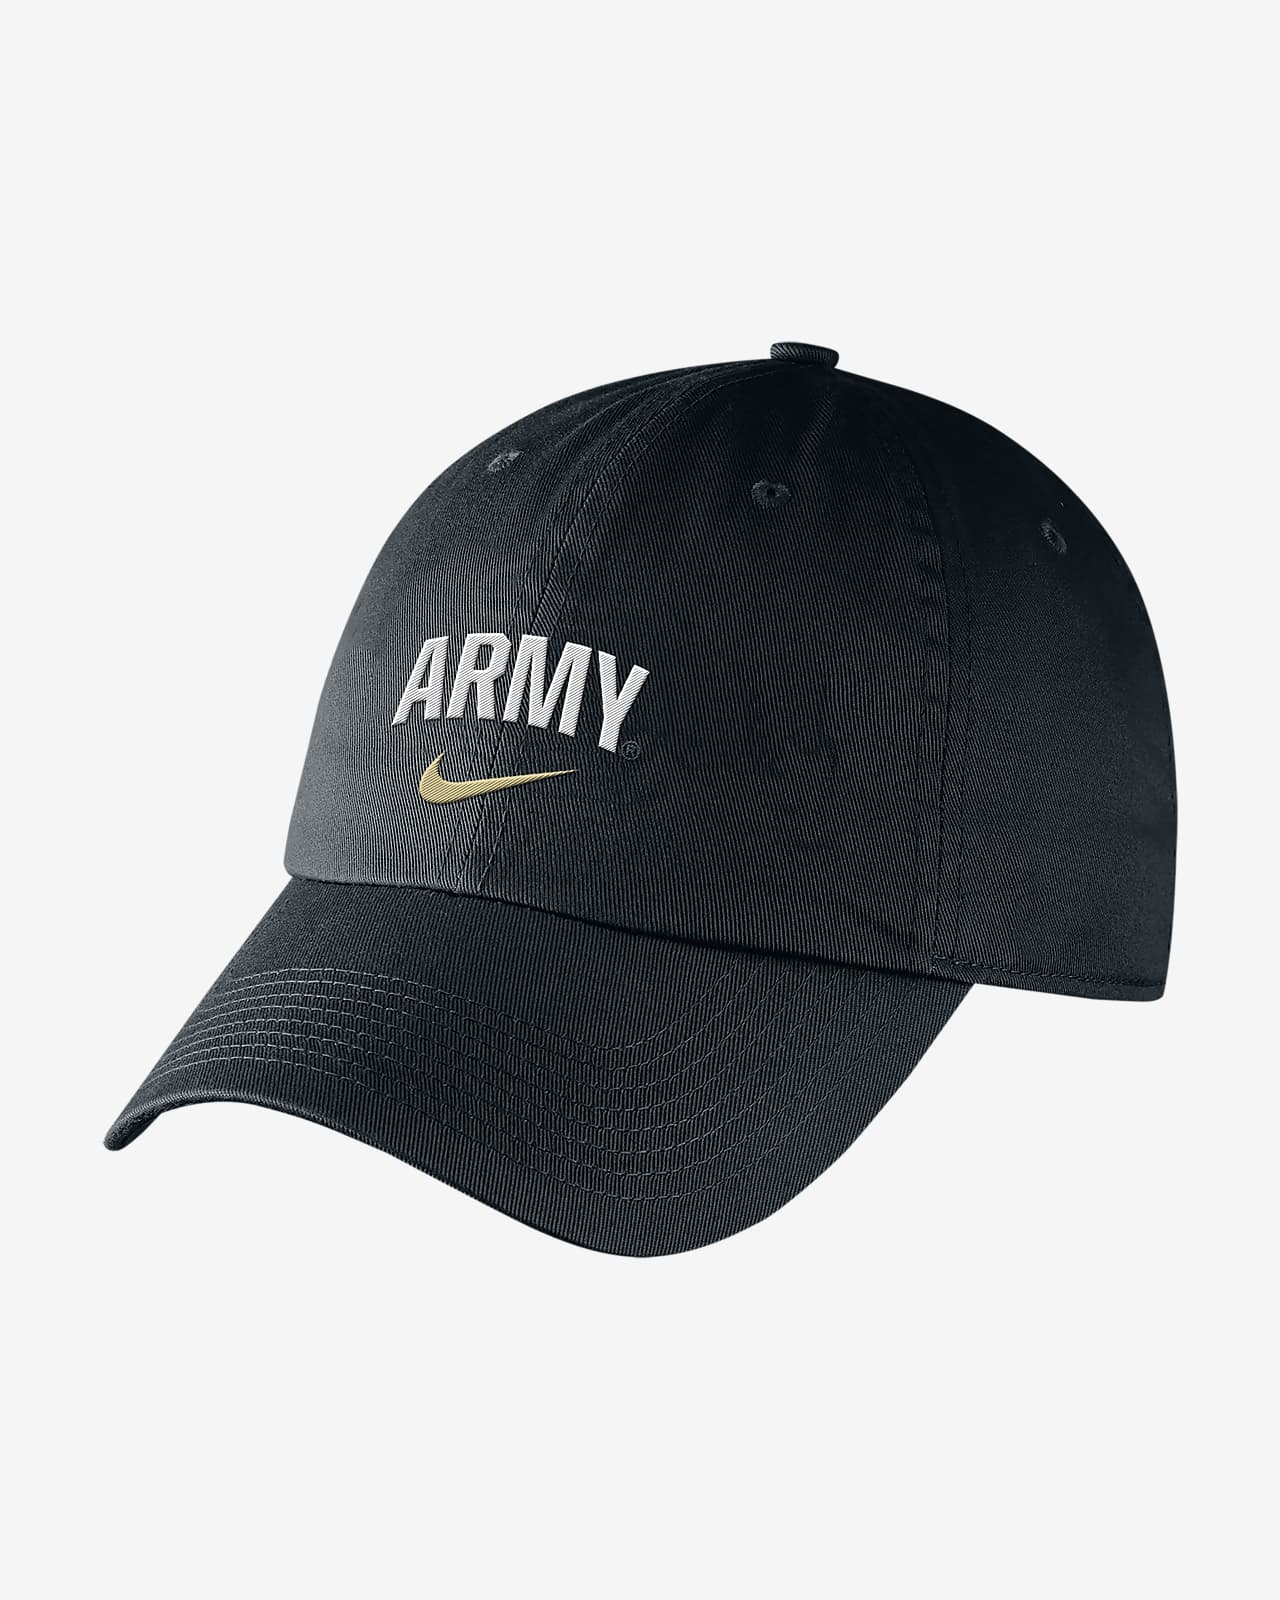 Nike College (Army) Hat